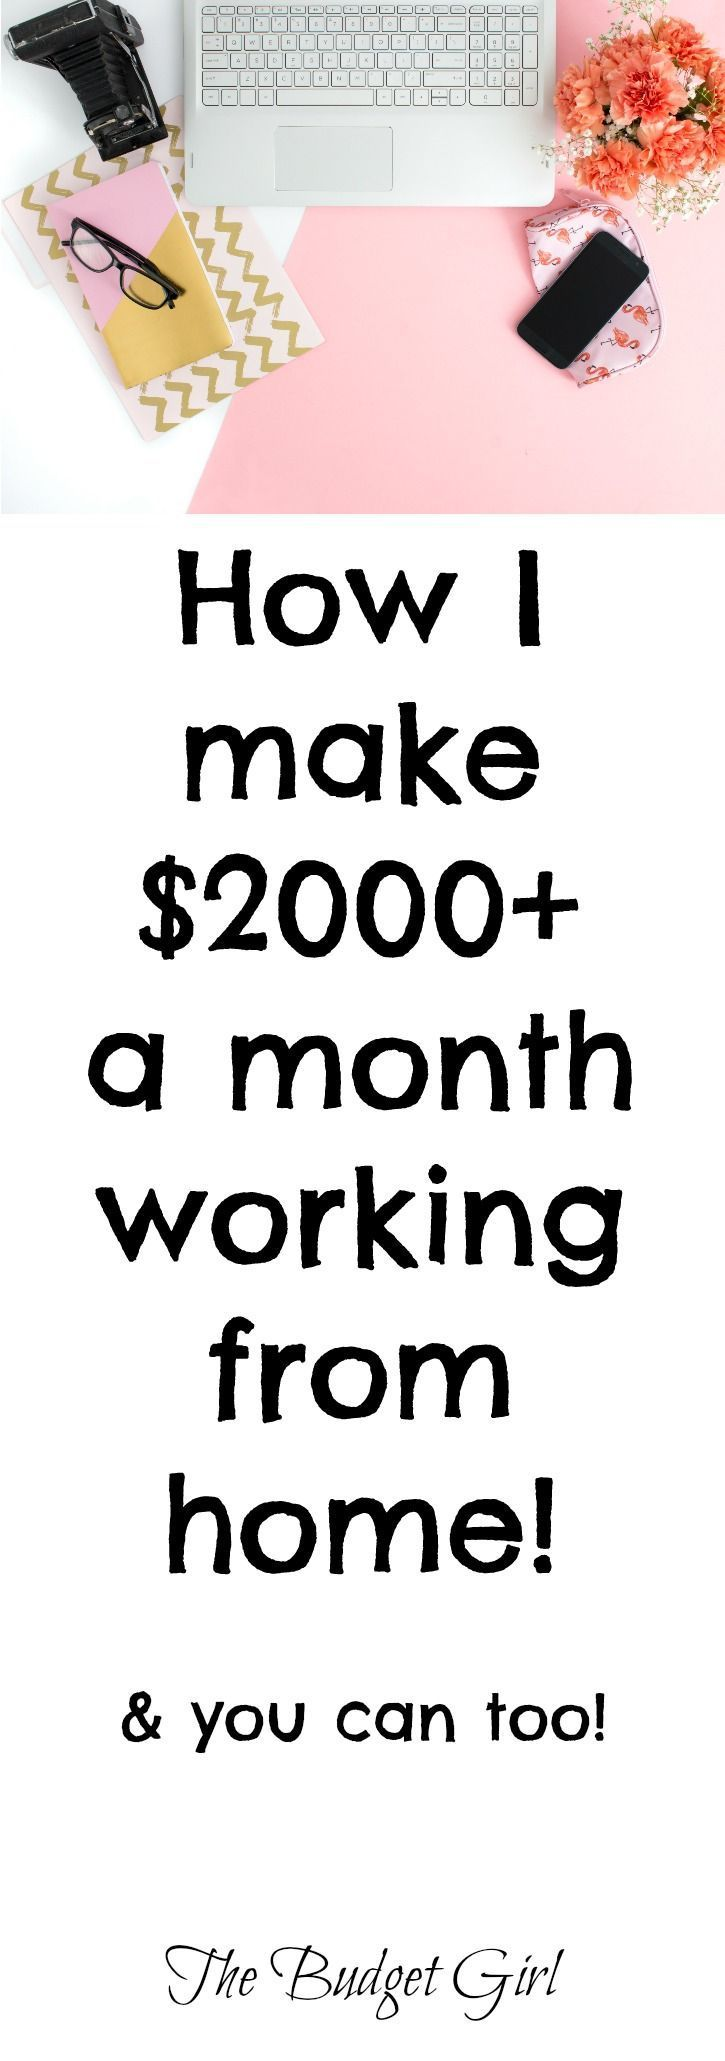 earn extra monty work from home jobs stay at home mom jobs legit ...